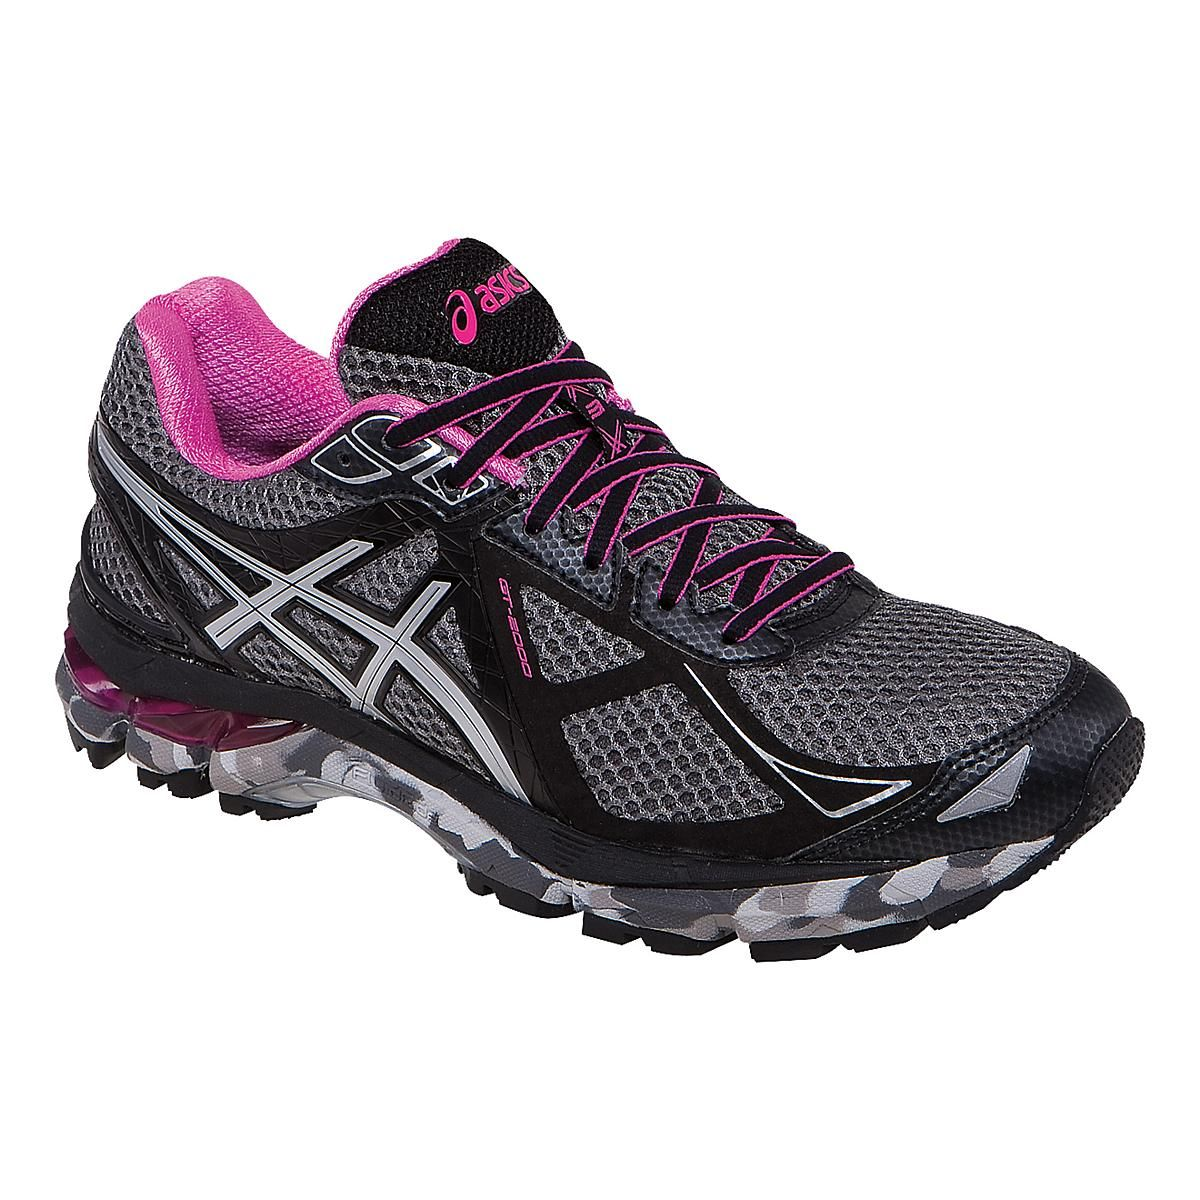 Ready to seek adventure beyond the pavement  The newly upgraded Womens  ASICS GT-2000 3 Trail shoe is perfectly designed to take you there a71e04528